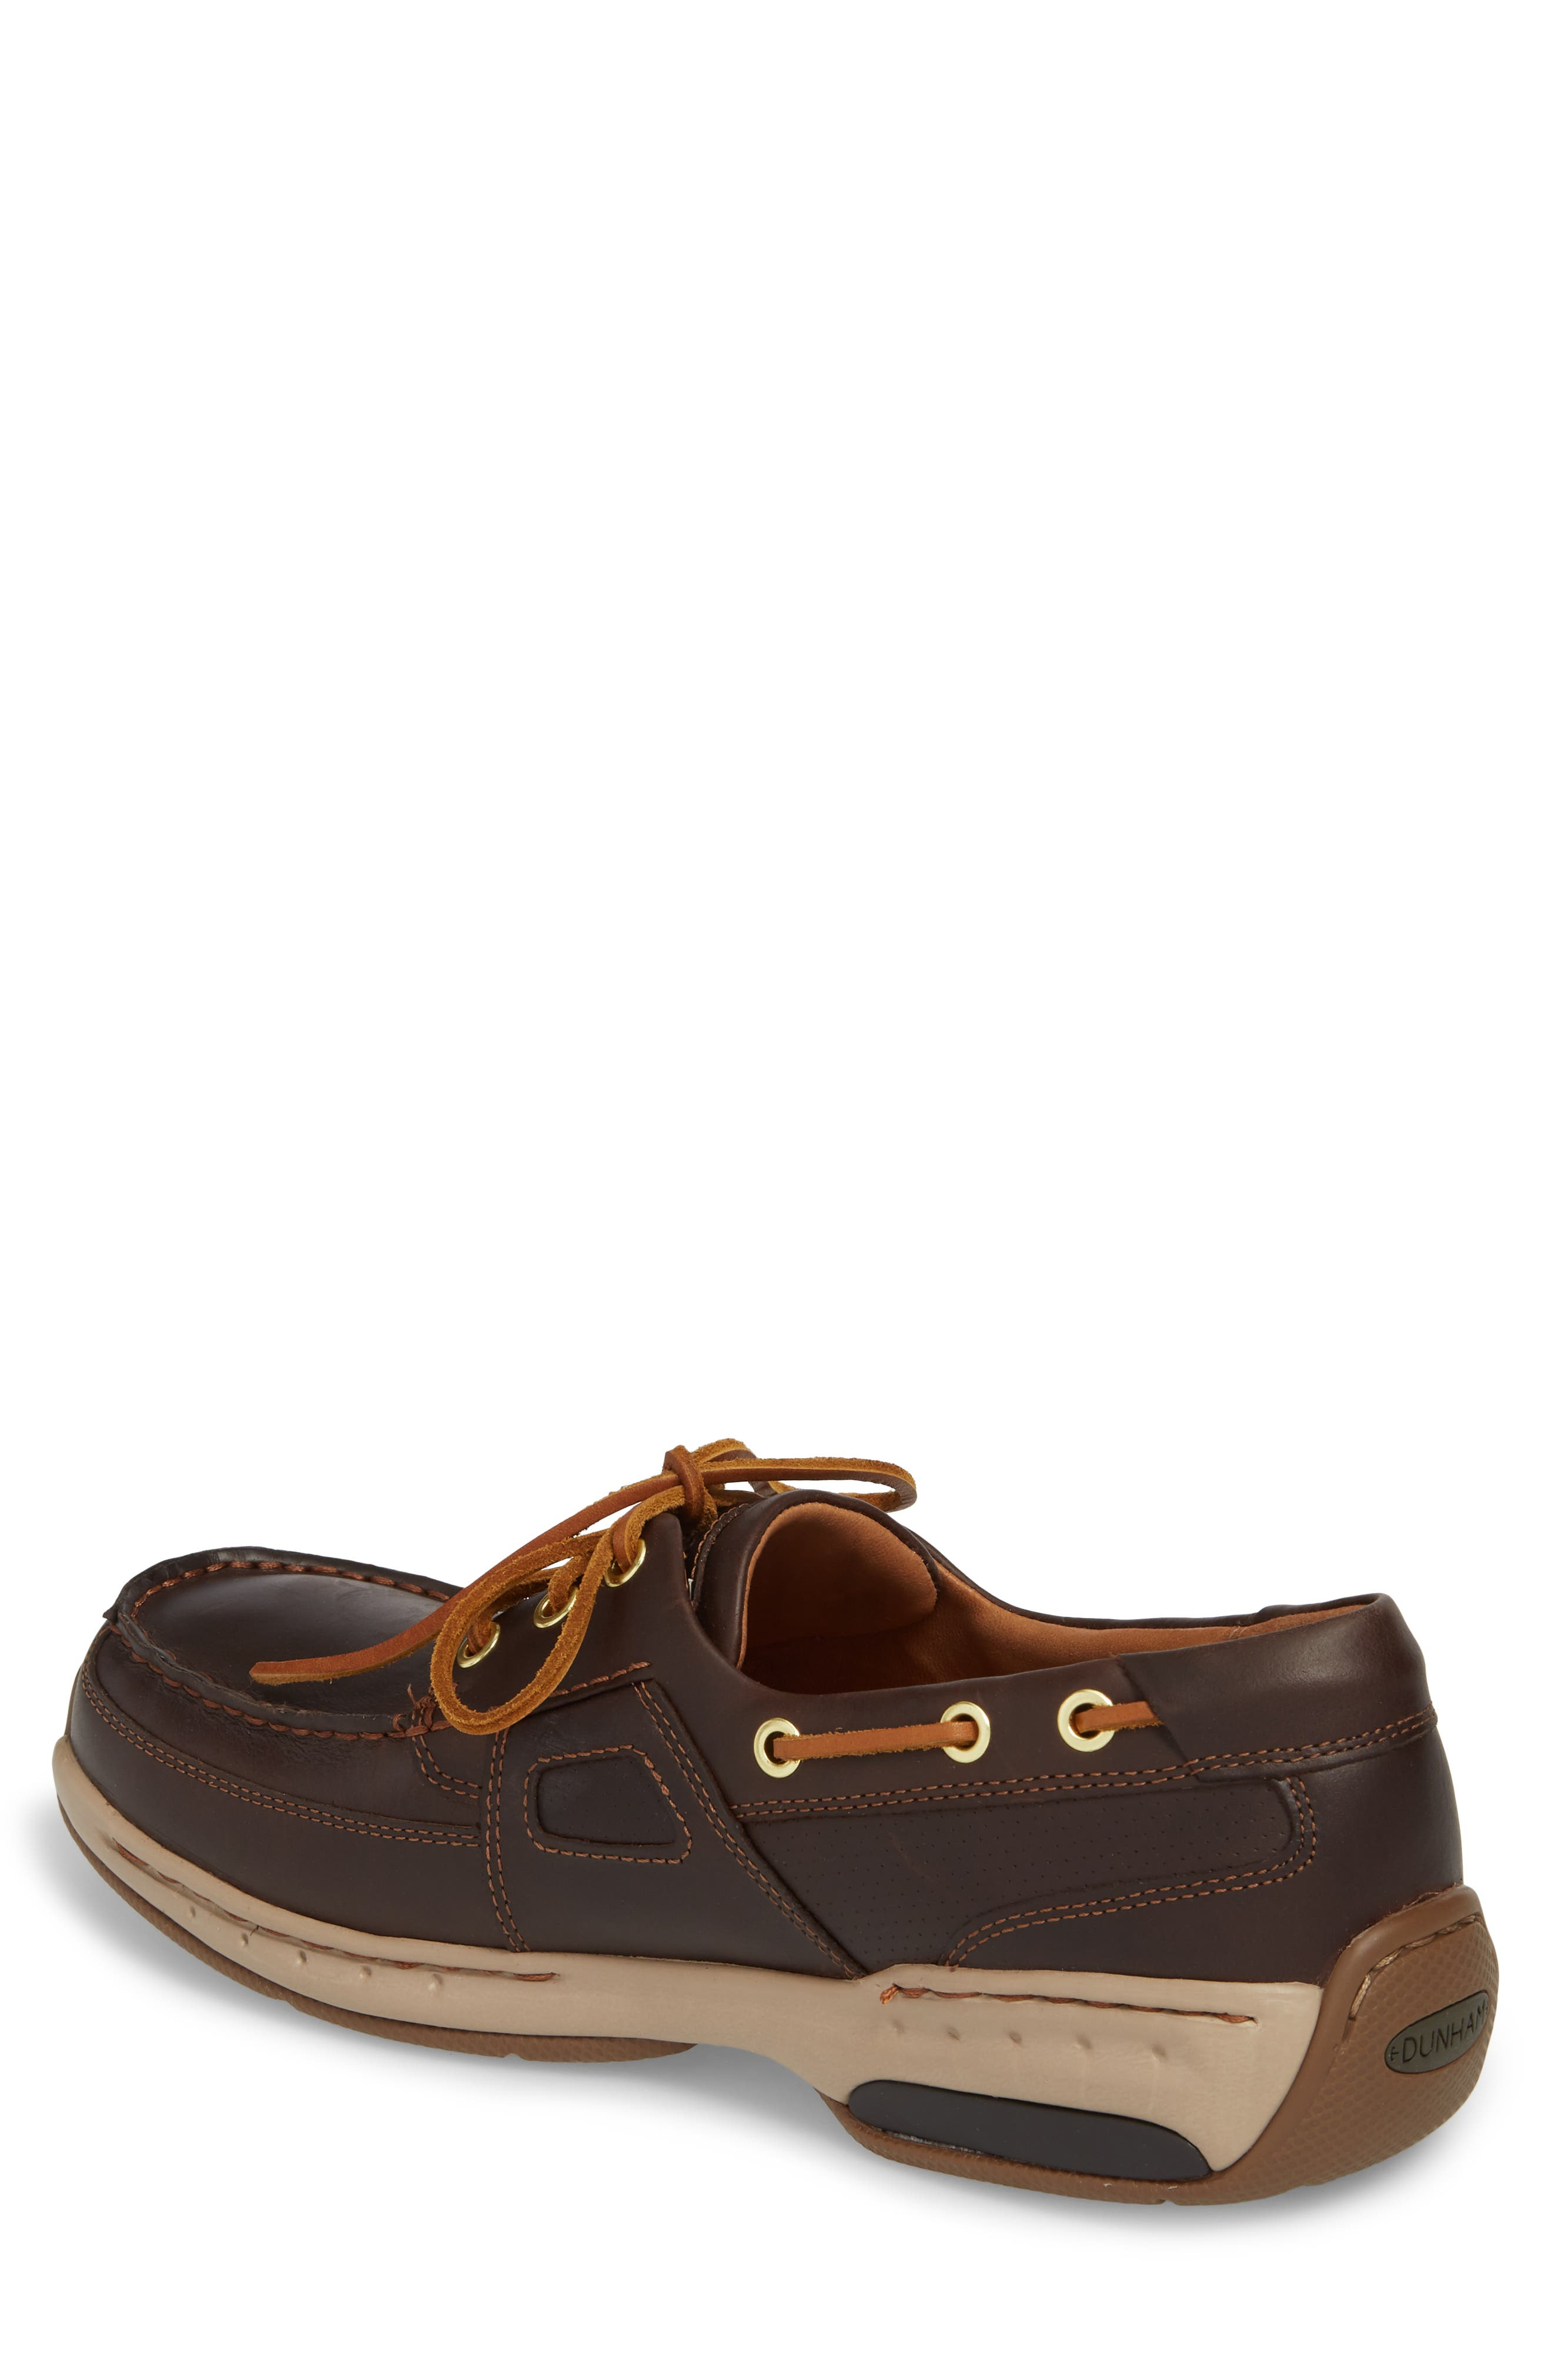 DUNHAM, LTD Water Resistant Boat Shoe, Alternate thumbnail 2, color, TAN LEATHER